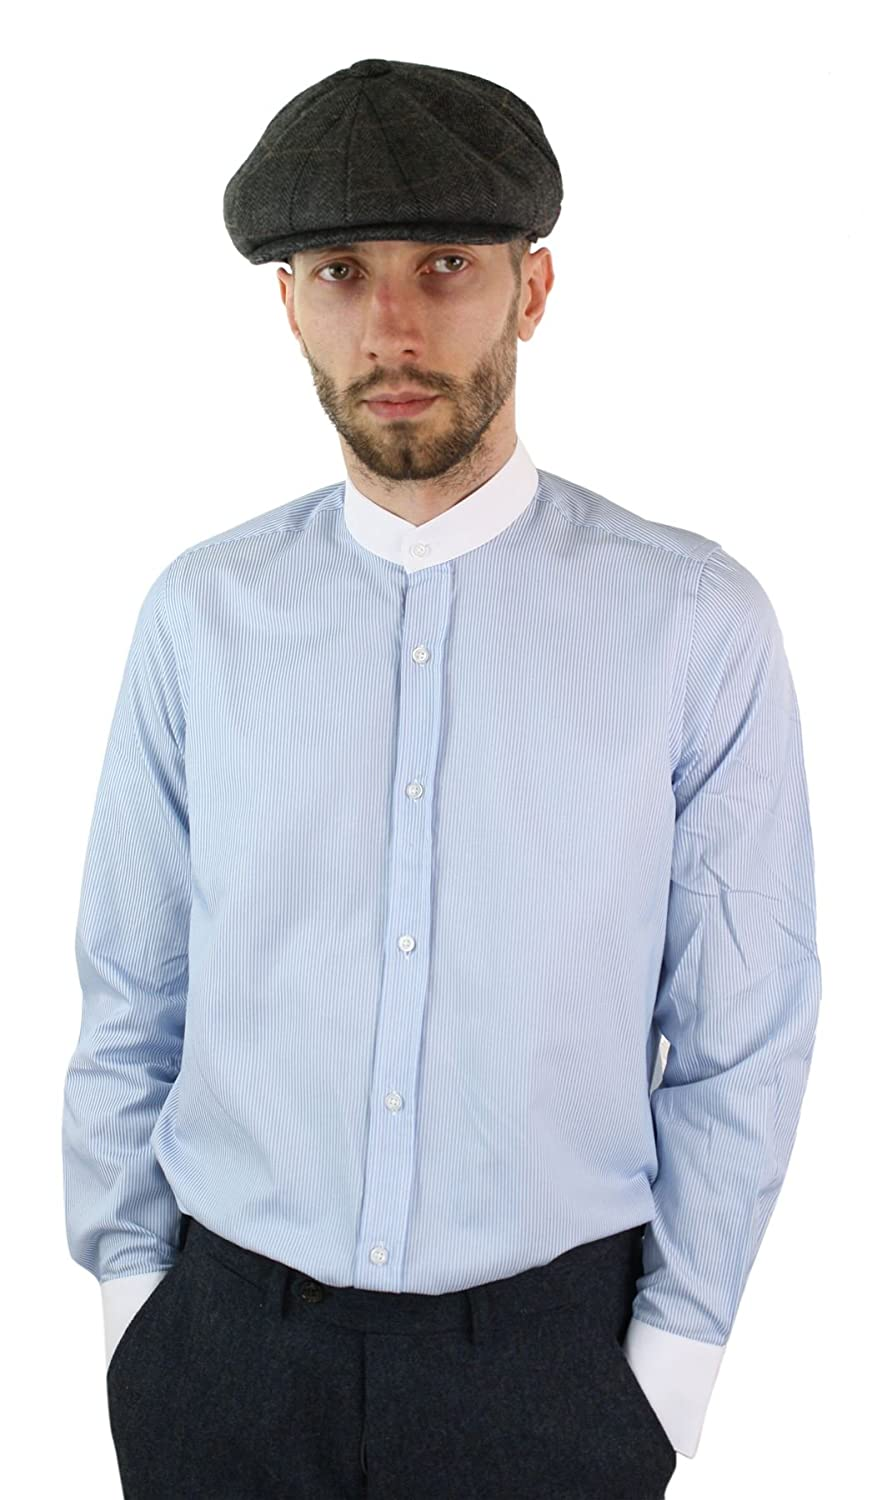 1920s Men's Fashion UK | Peaky Blinders Clothing Mens Retro Peaky Blinders Removable Collar Stripe Grandad Nehru Collarless Shirt - Light-Blue S(36-38